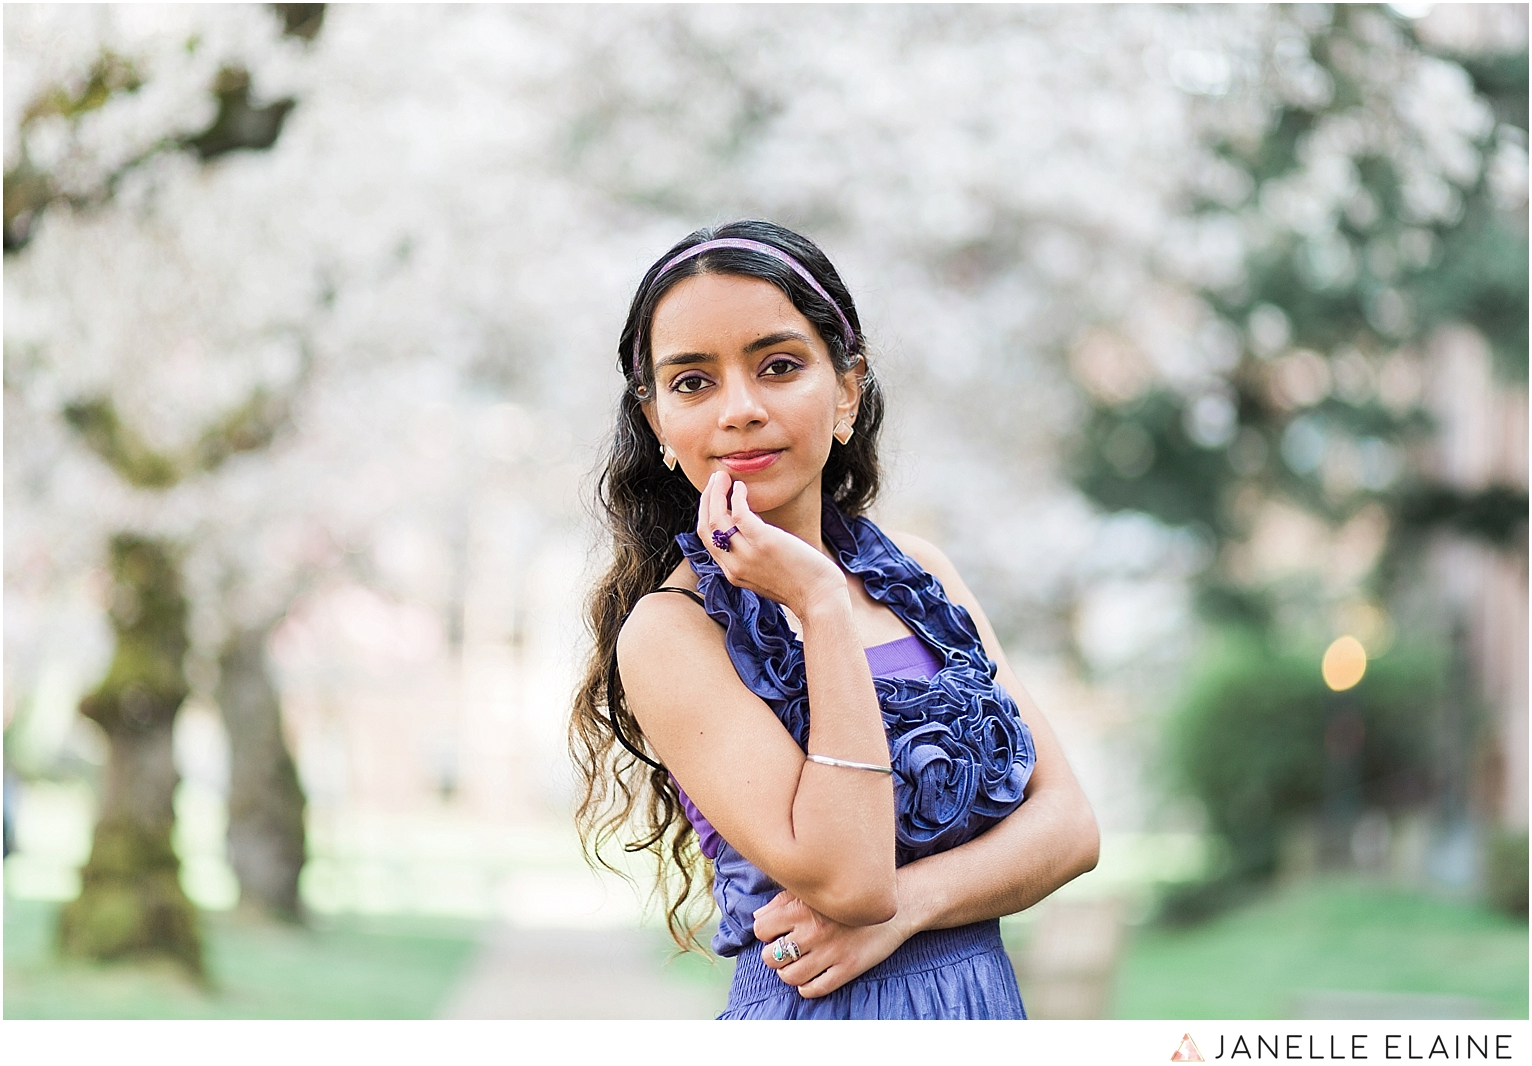 Sufience-Harkirat-spring portrait session-cherry blossoms-uw-seattle photographer janelle elaine-12.jpg